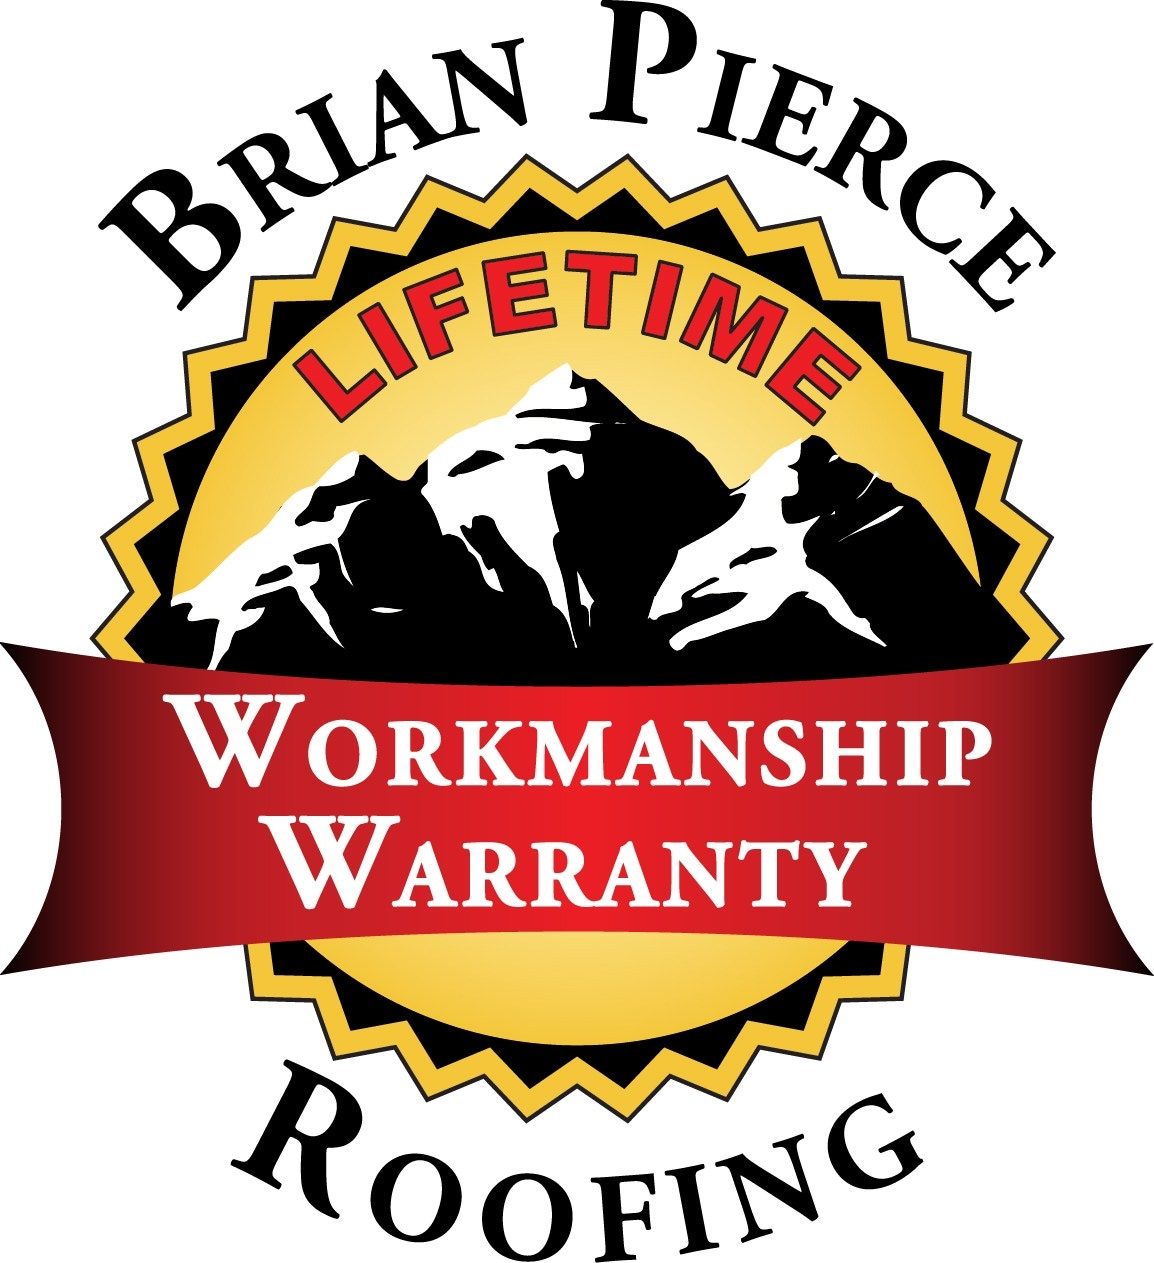 Brian Pierce Roofing & Gutters LLC